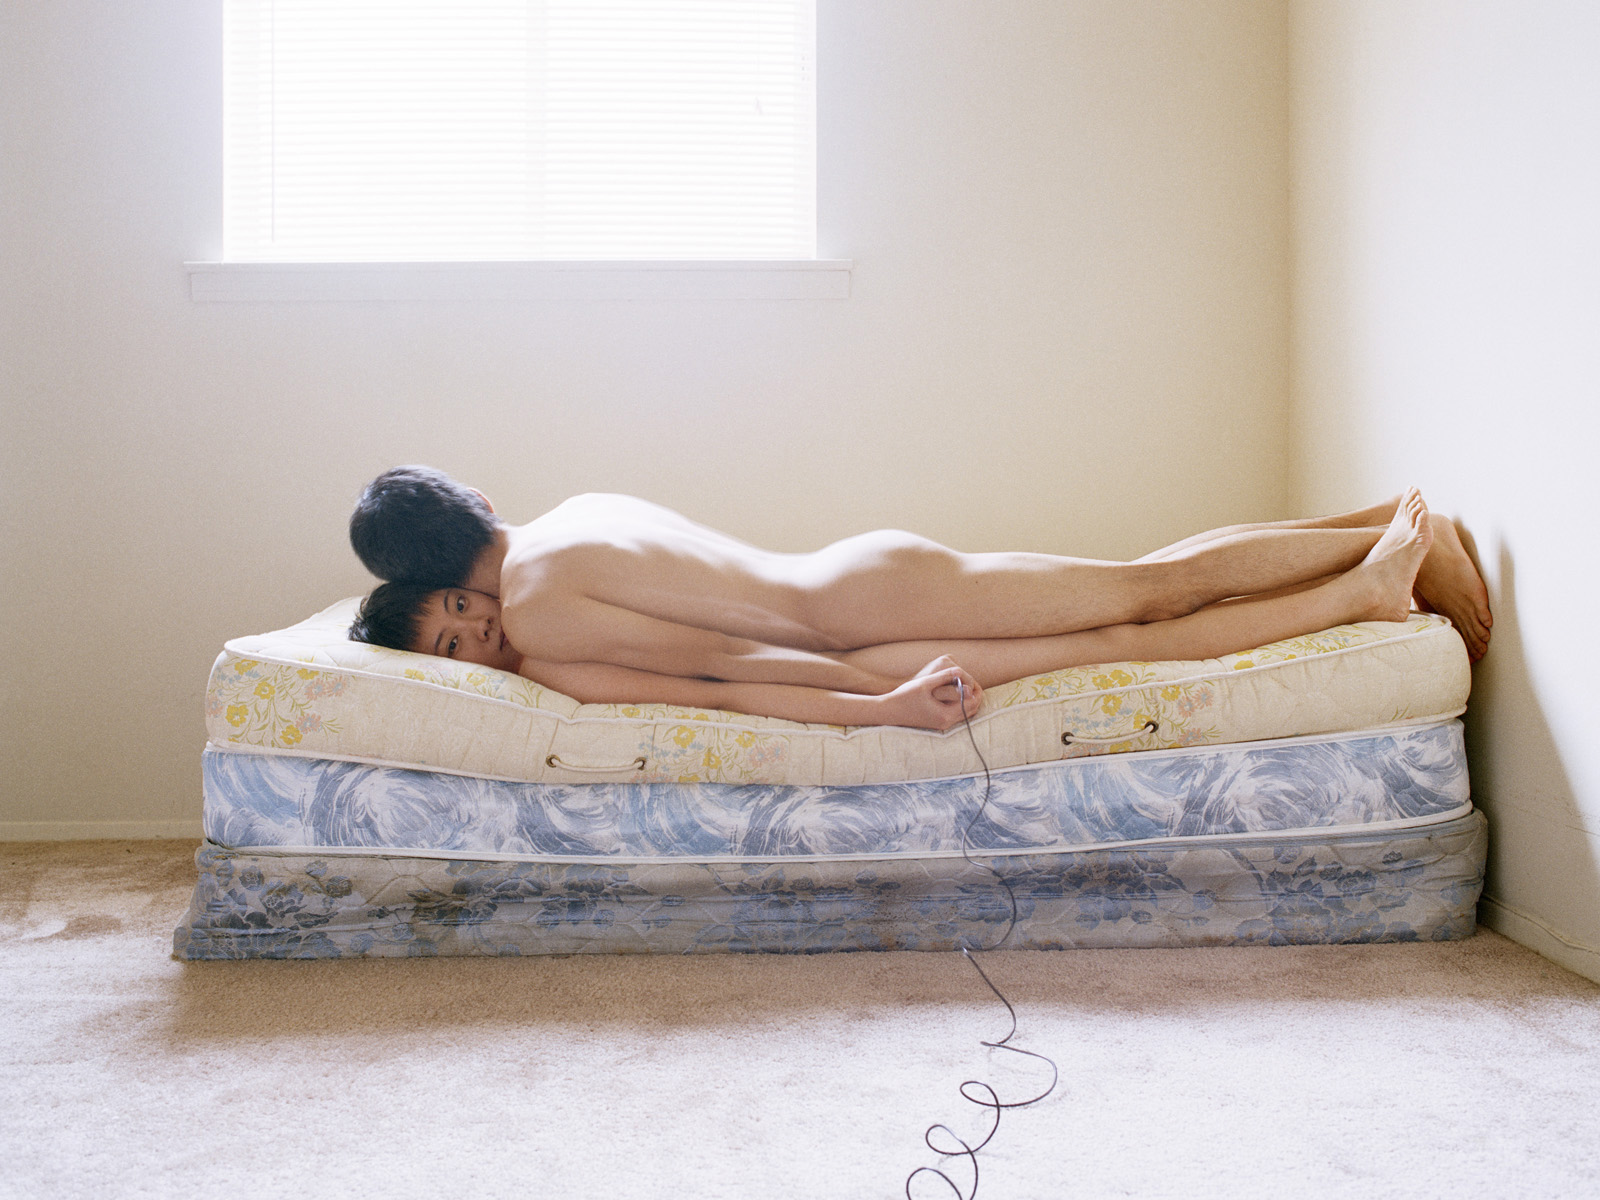 """Experimental Relationship © Pixy Liao  """"How to build a relationship with layered meanings"""""""